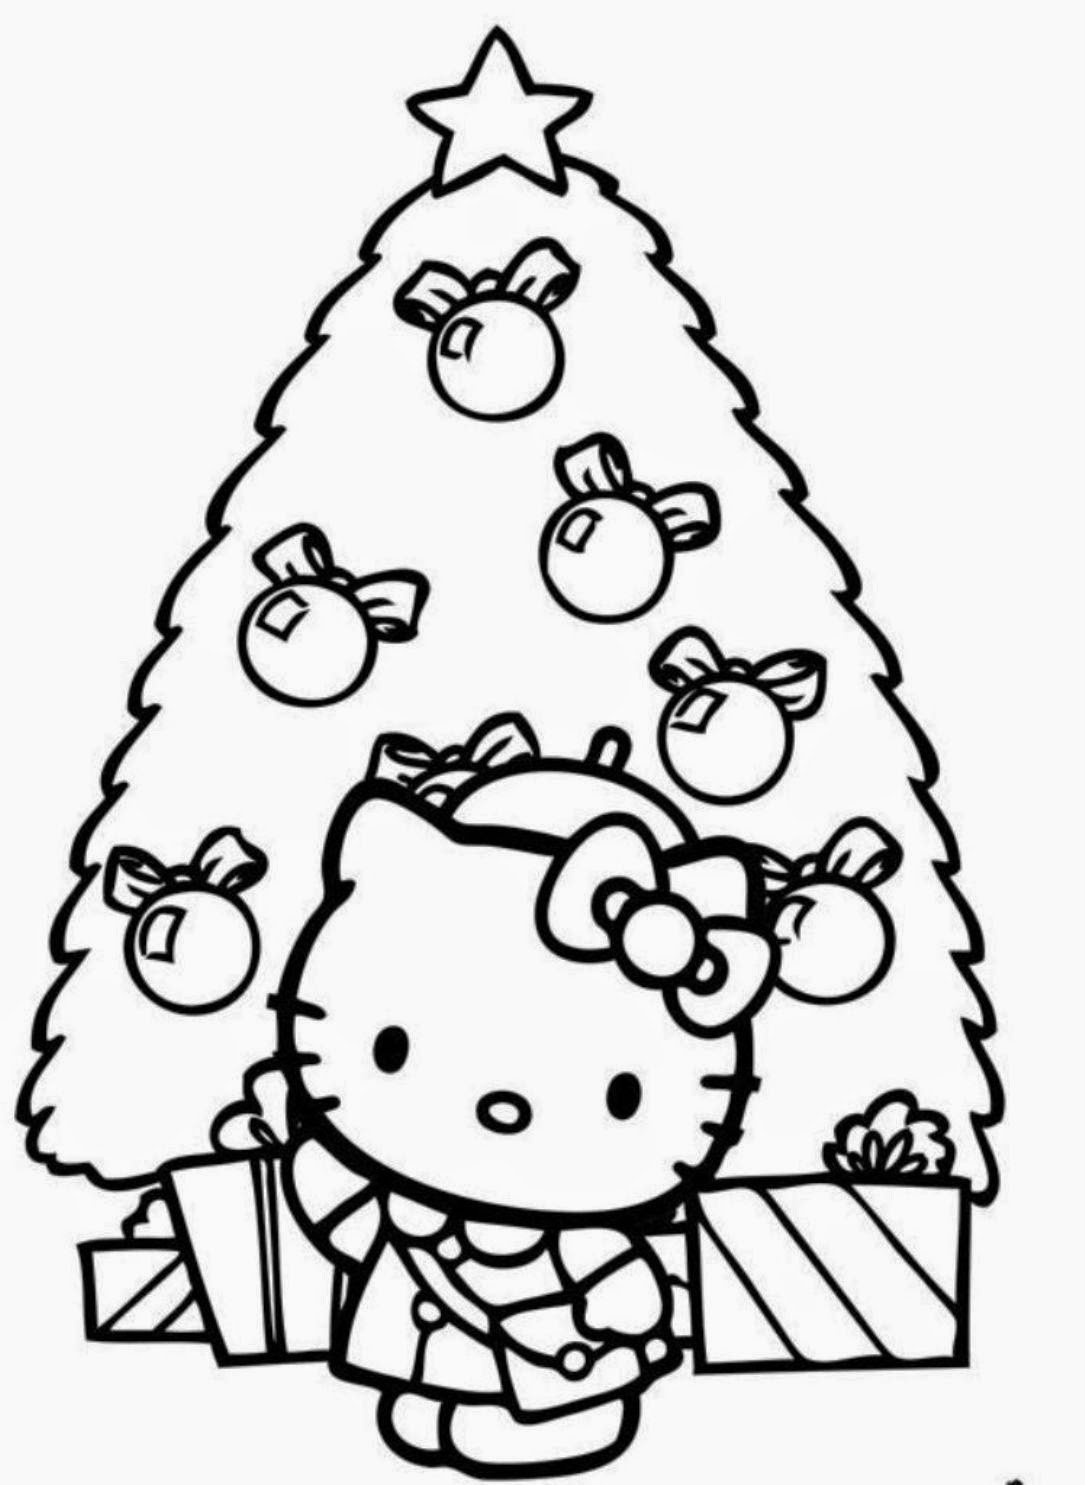 Hello Kitty Printable Coloring Pages Embroidery Line Game Free Download Of Proven Coloring Pages to Print Hello Kitty 2895 Unknown Printable